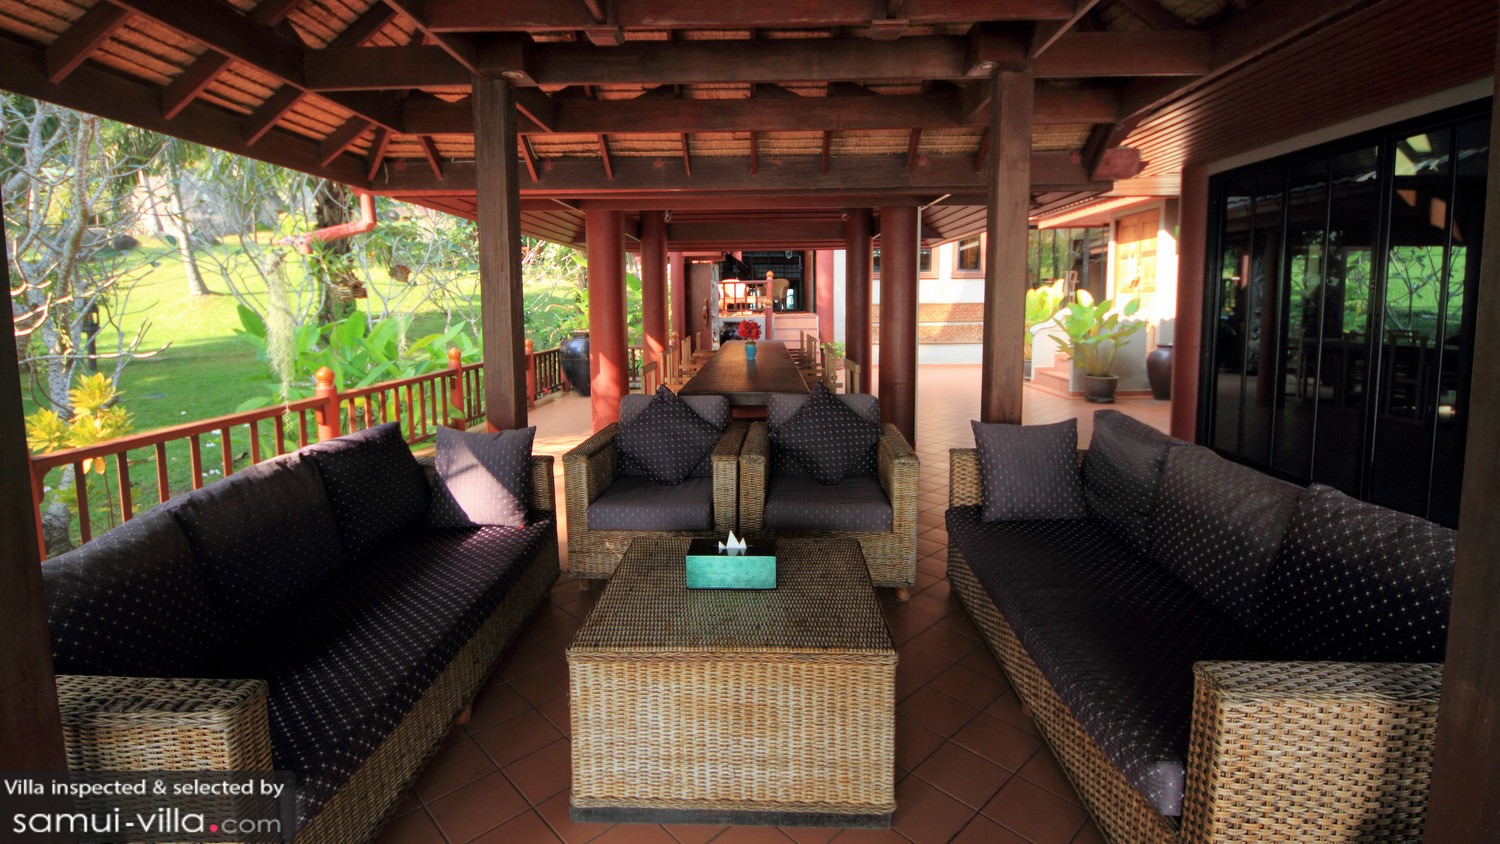 Classic Villa in Bang Kao beach, Koh Samui - 3 bedrooms